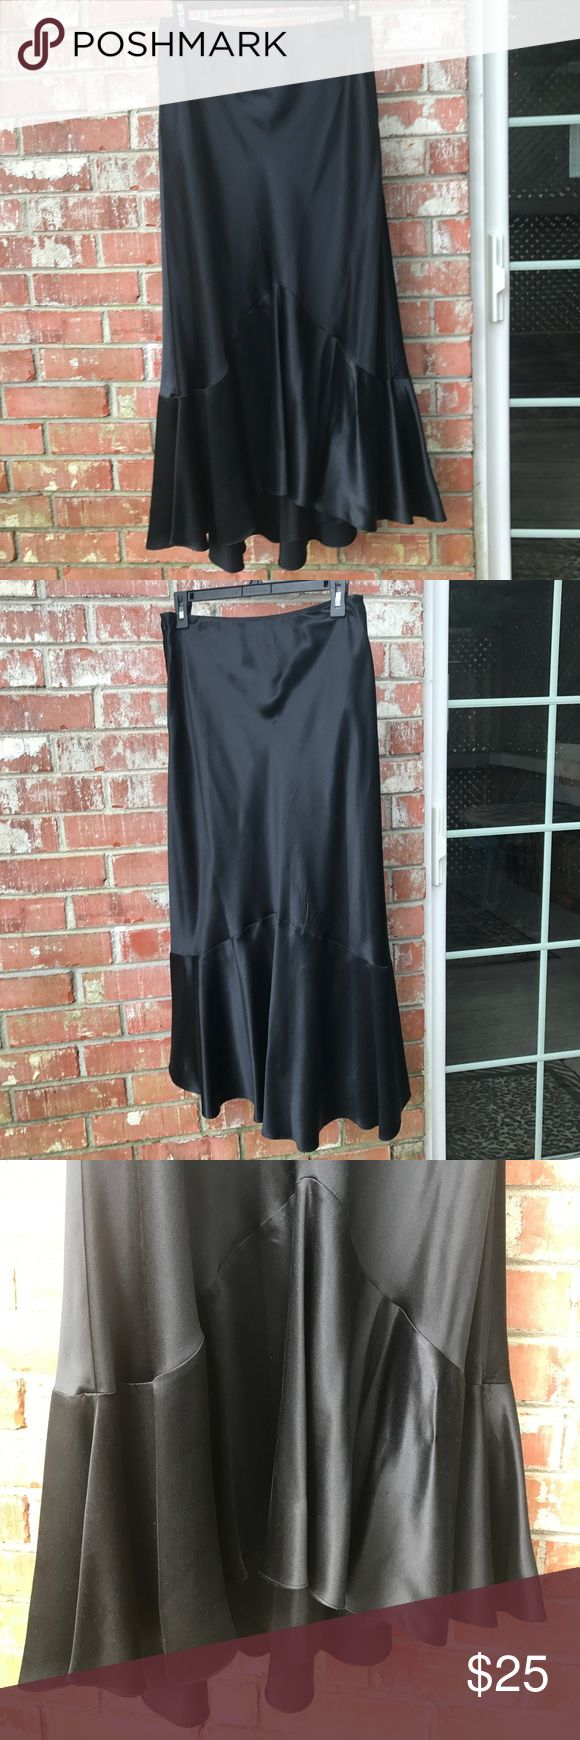 """RL Long Silk Trumpet Skirt LRL. 100% Silk. Feels like a polyester and almost wrinkle free. Fully lined. A small superficial snag at the bottom in the back. (Last pic) Side zip. 15"""" waist, 31"""" long in the front, 35"""" in the back. In overall excellent condition. Lauren Ralph Lauren Skirts"""